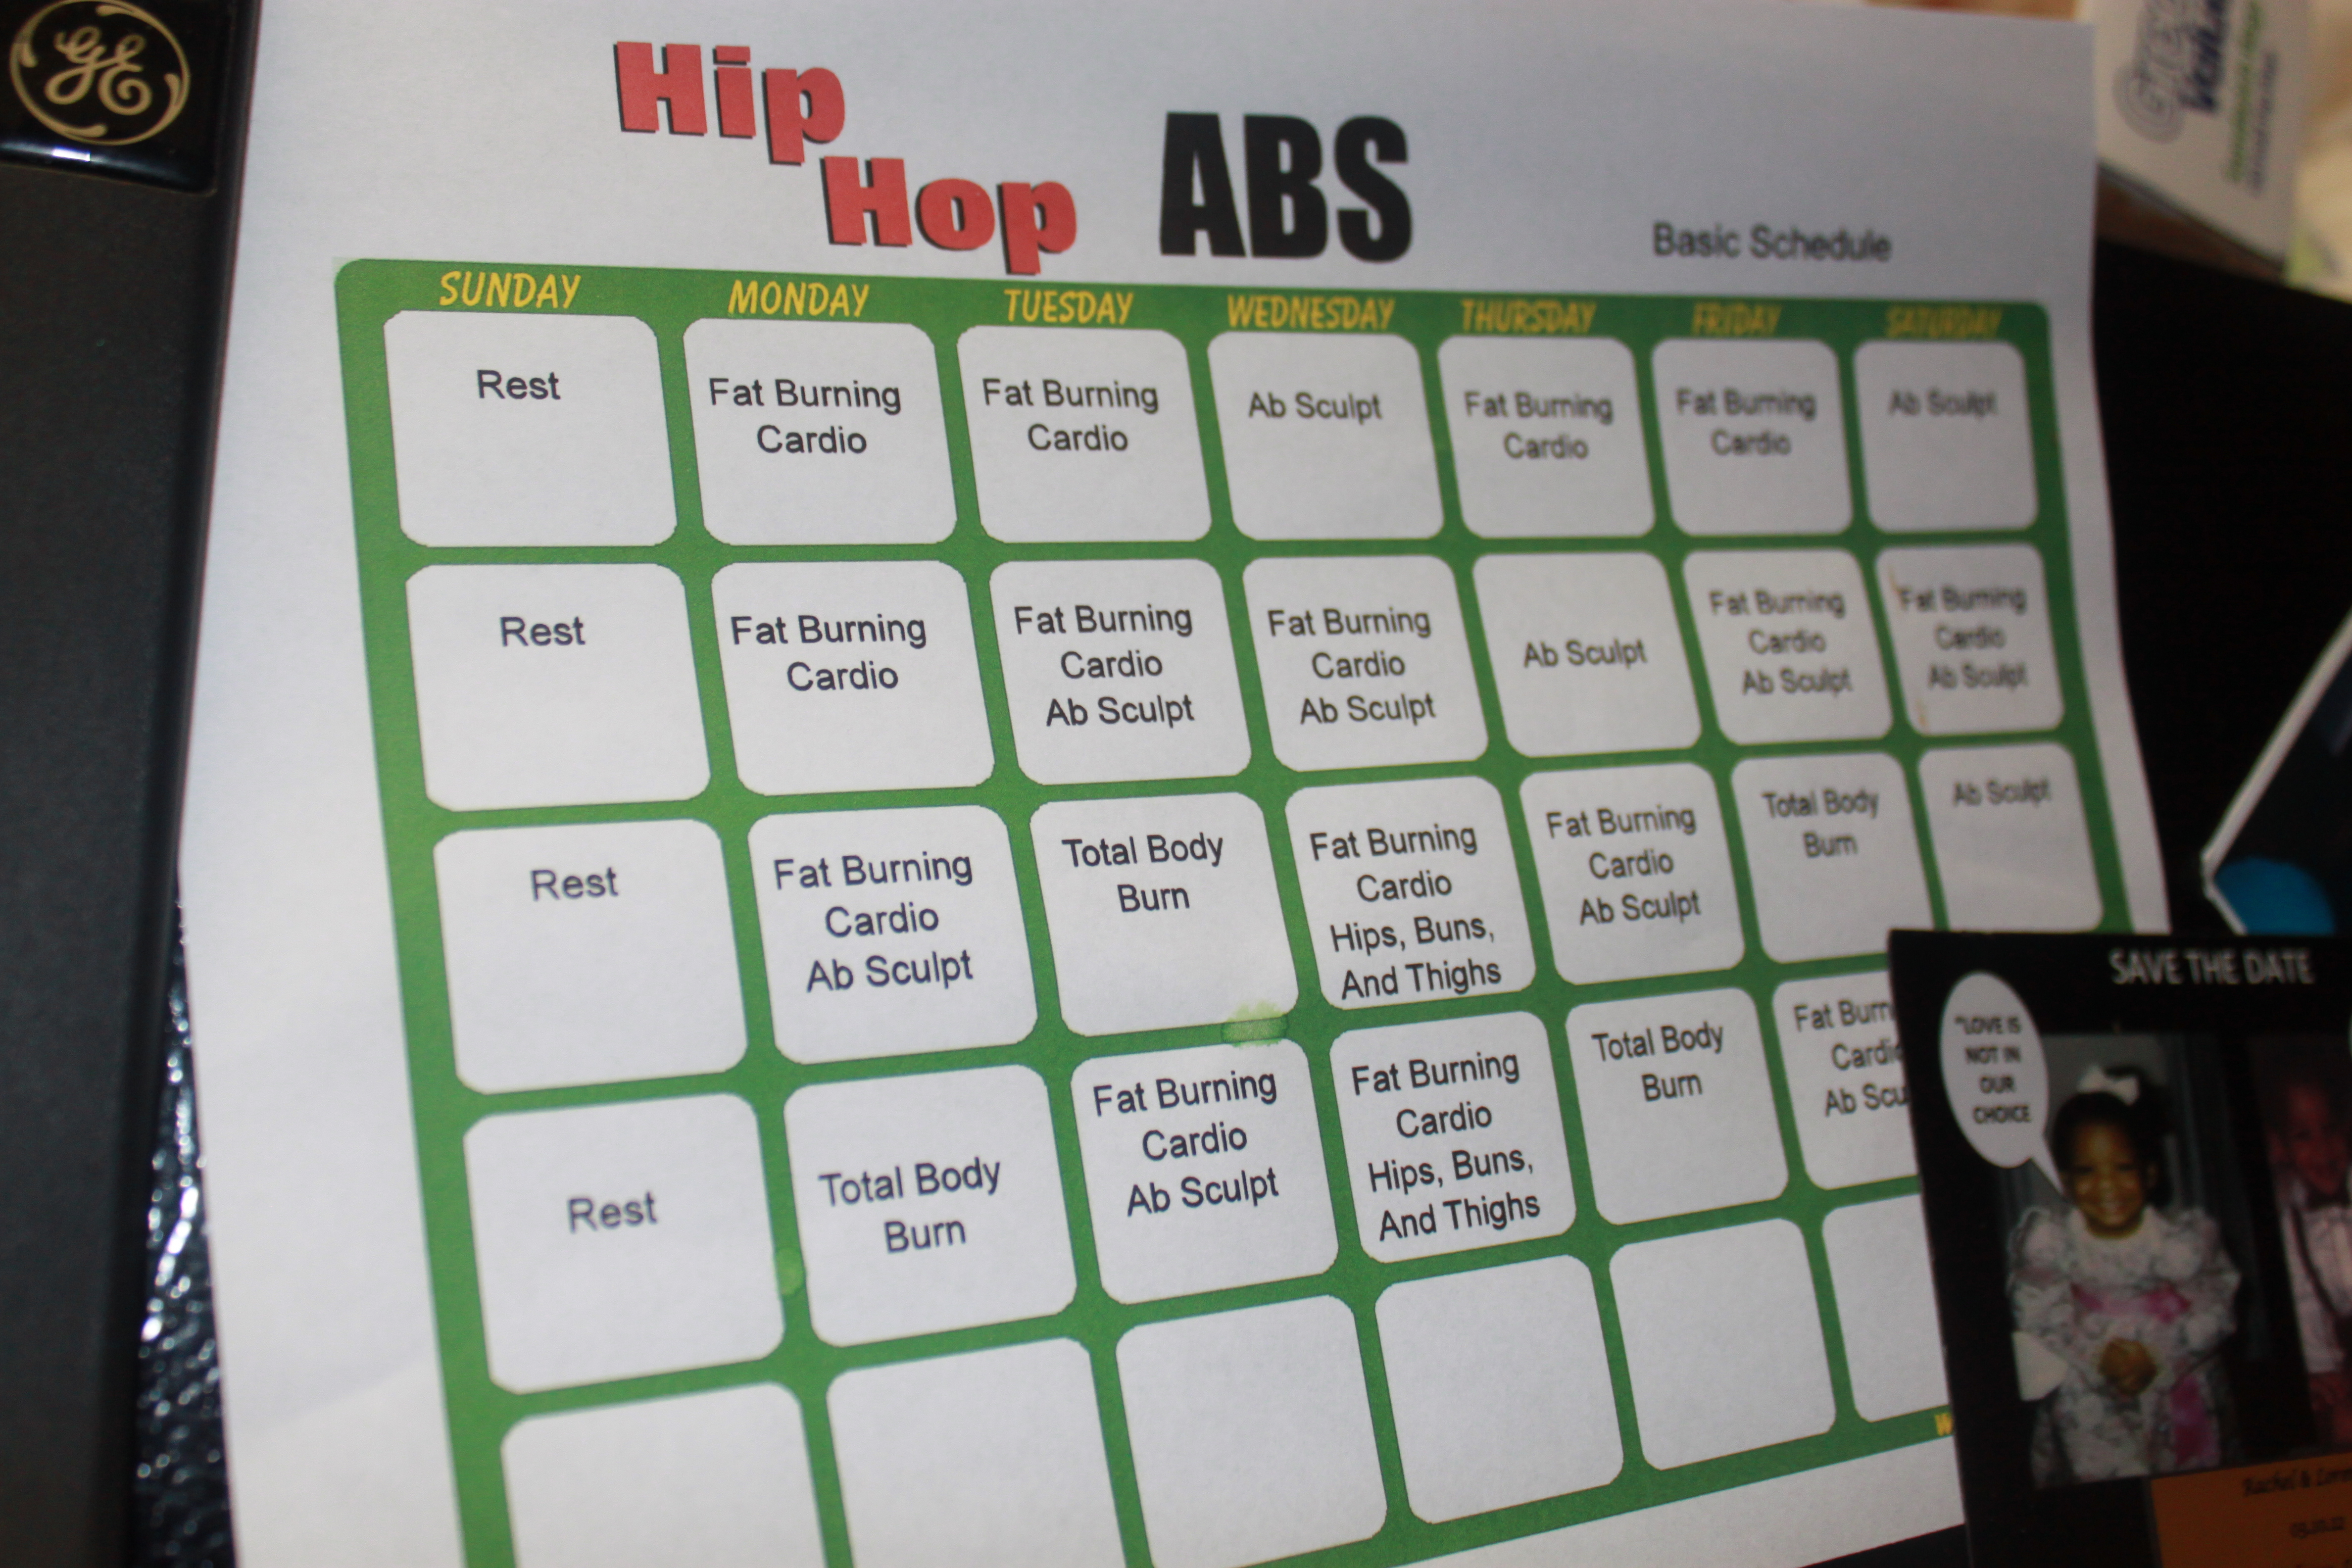 Playlist | All I Need To Get By with regard to Hip Hop Abs Month 2